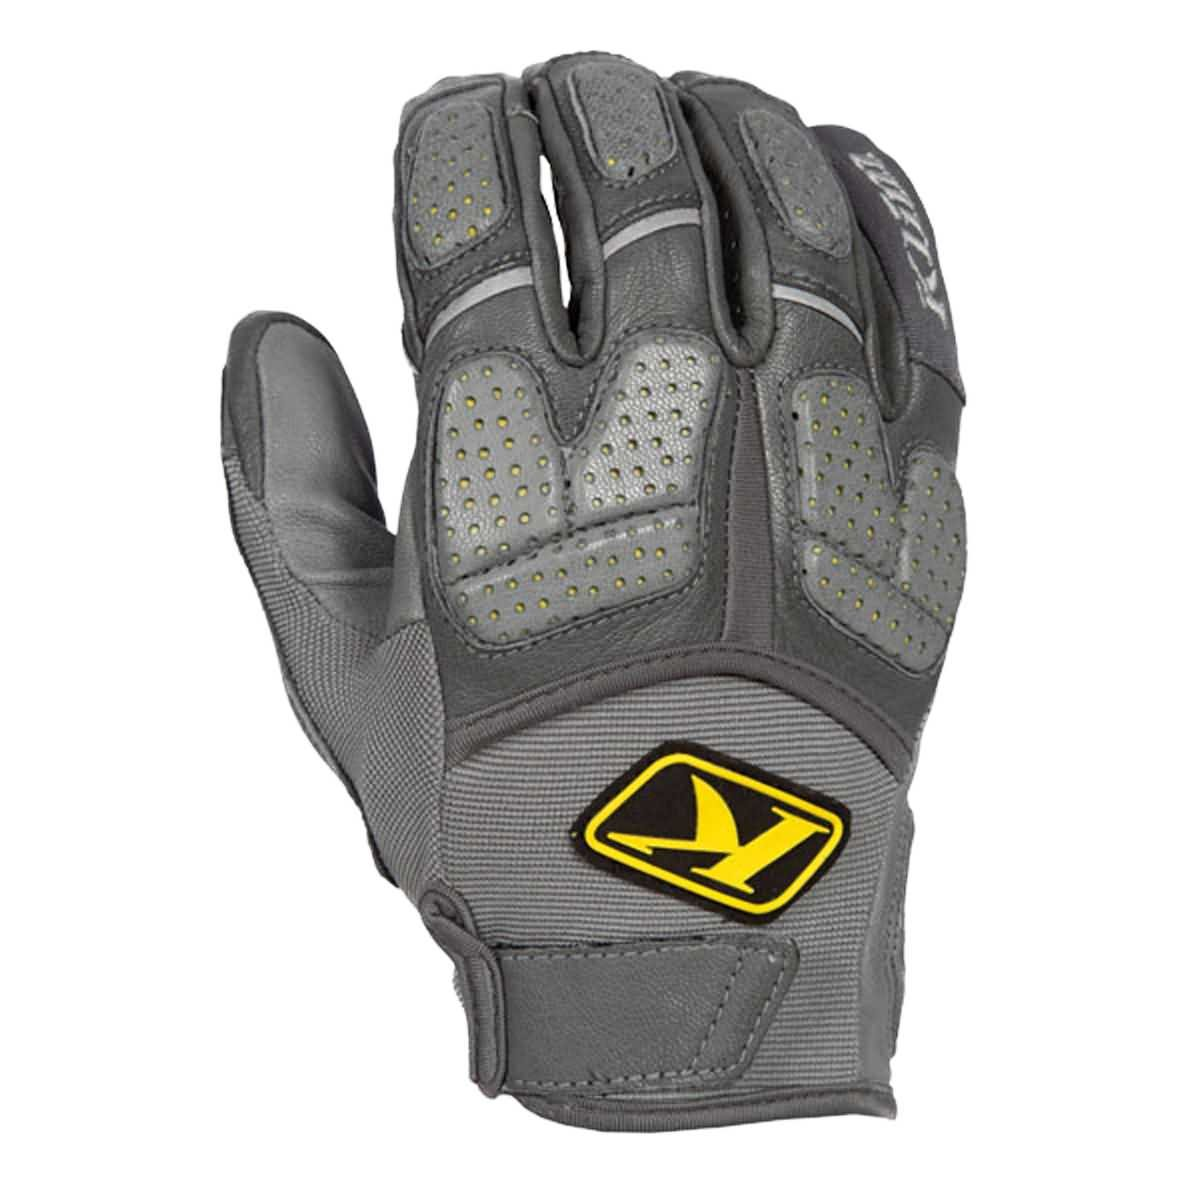 Klim Dakar Pro Men's MotoX Motorcycle Gloves - Gray / 2X-Large